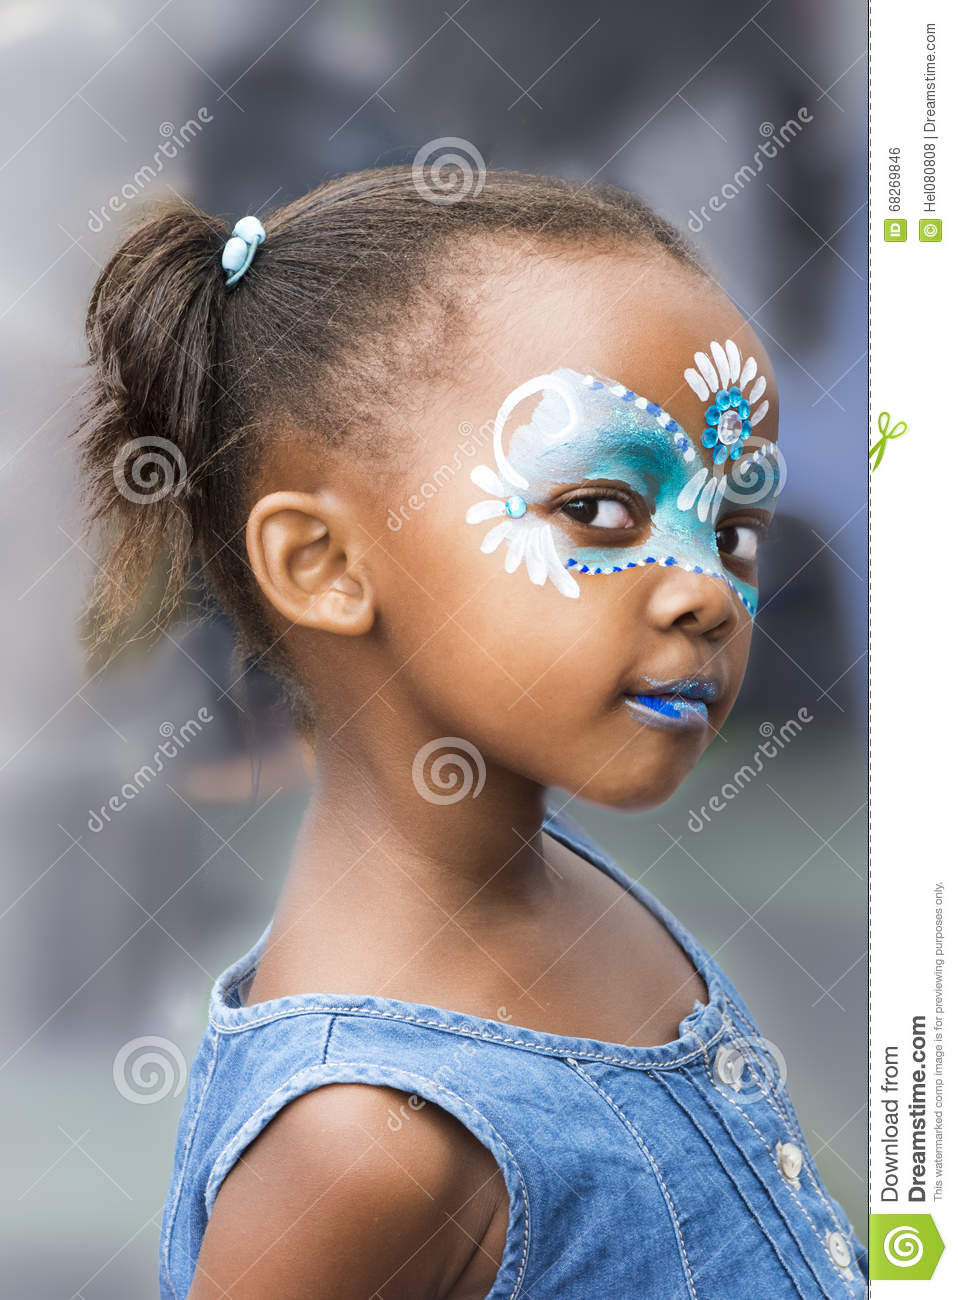 Girl Face Painting Stock Photo Image Of Fanciful Cute 68269846